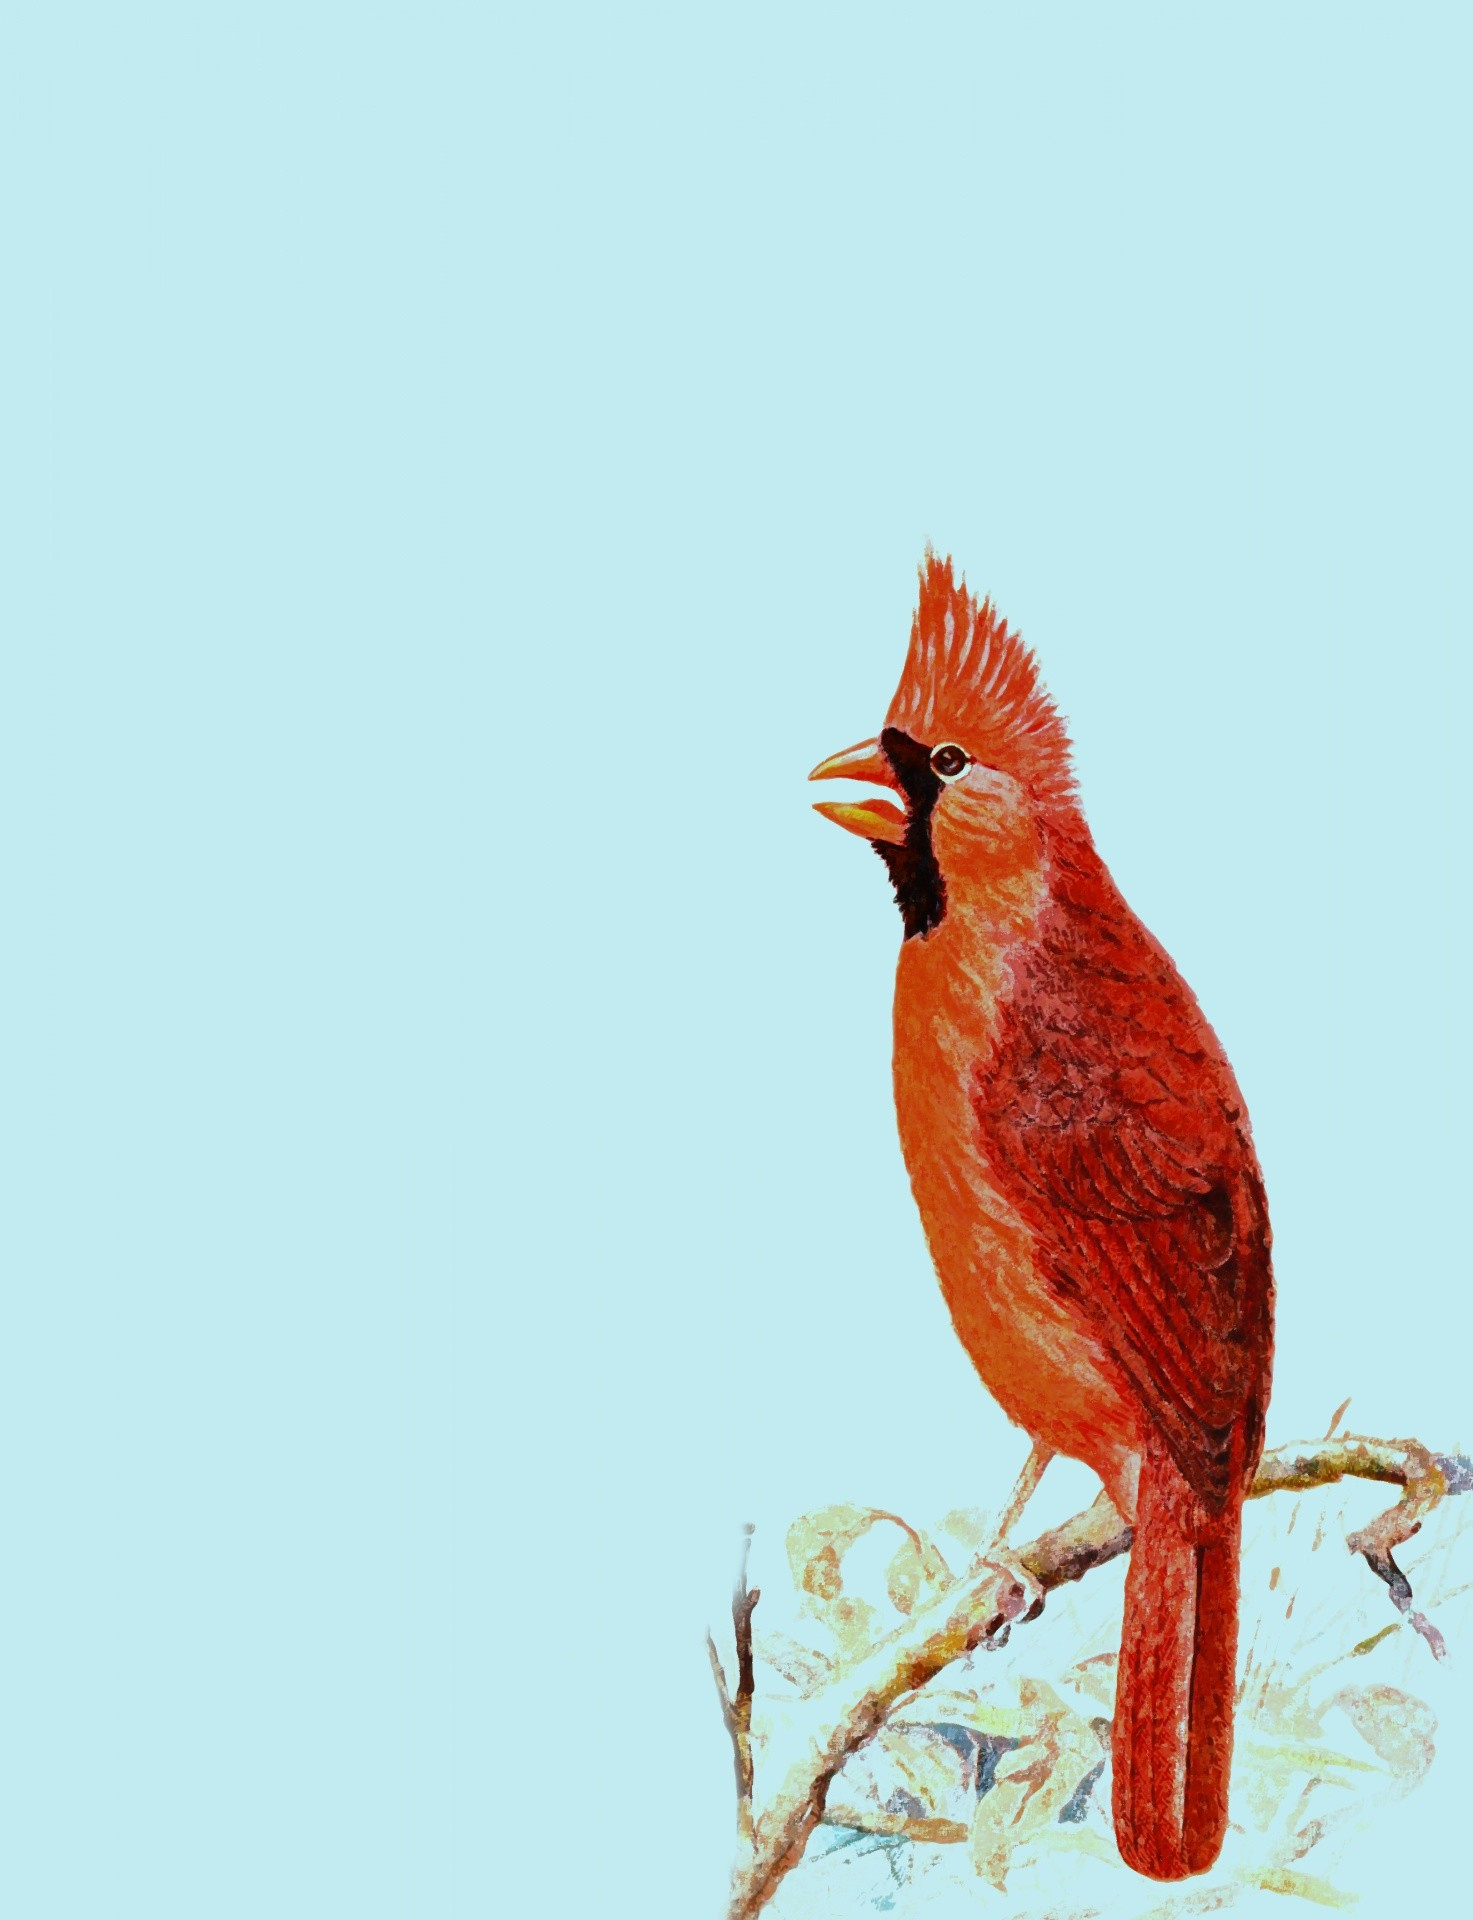 Res: 1473x1920, Cardinal Bird Red